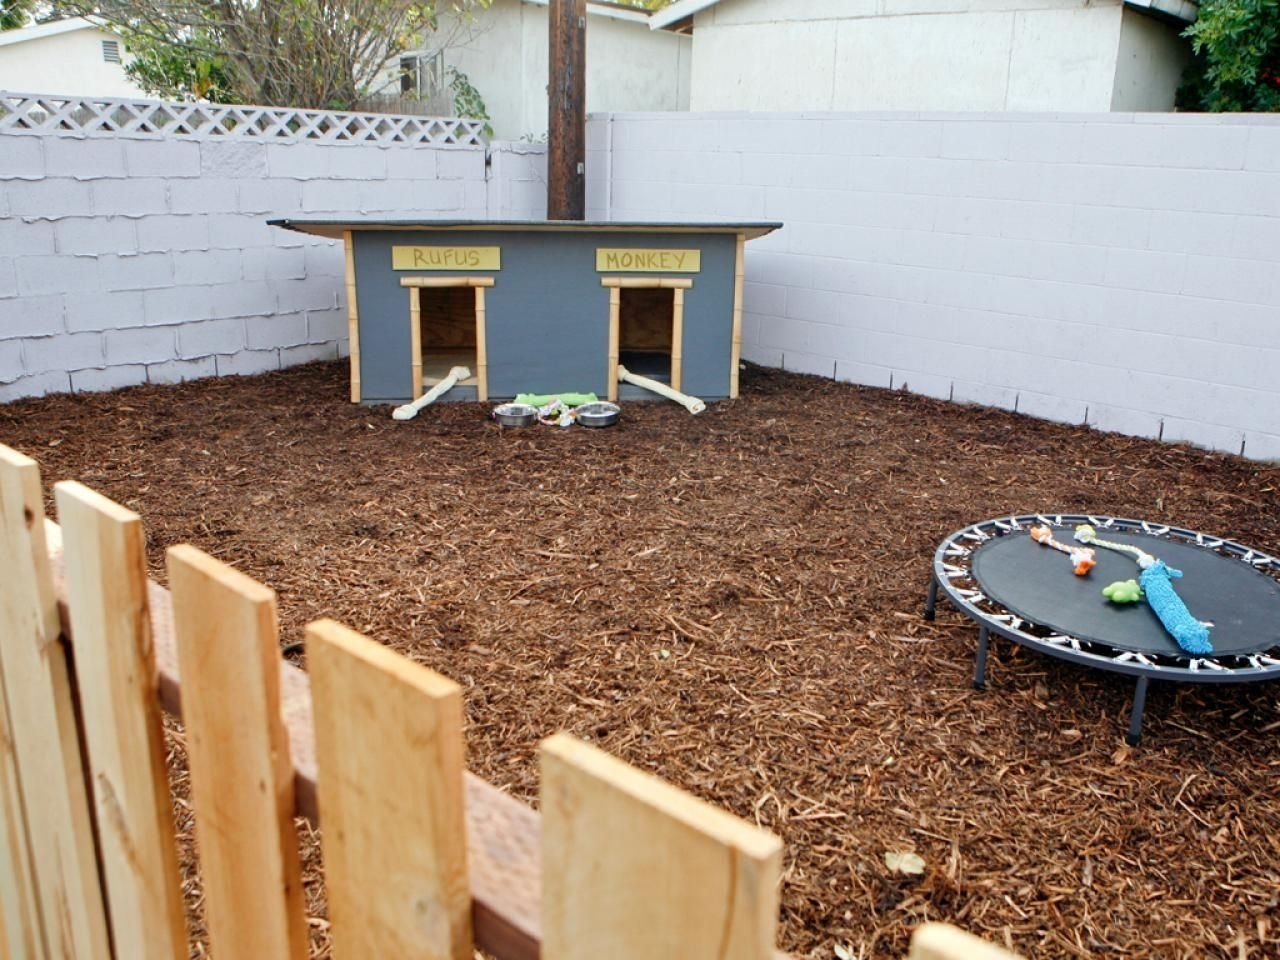 10 Stunning Backyard Landscaping Ideas For Dogs hot backyard design ideas to try now hardscape design landscaping 2020